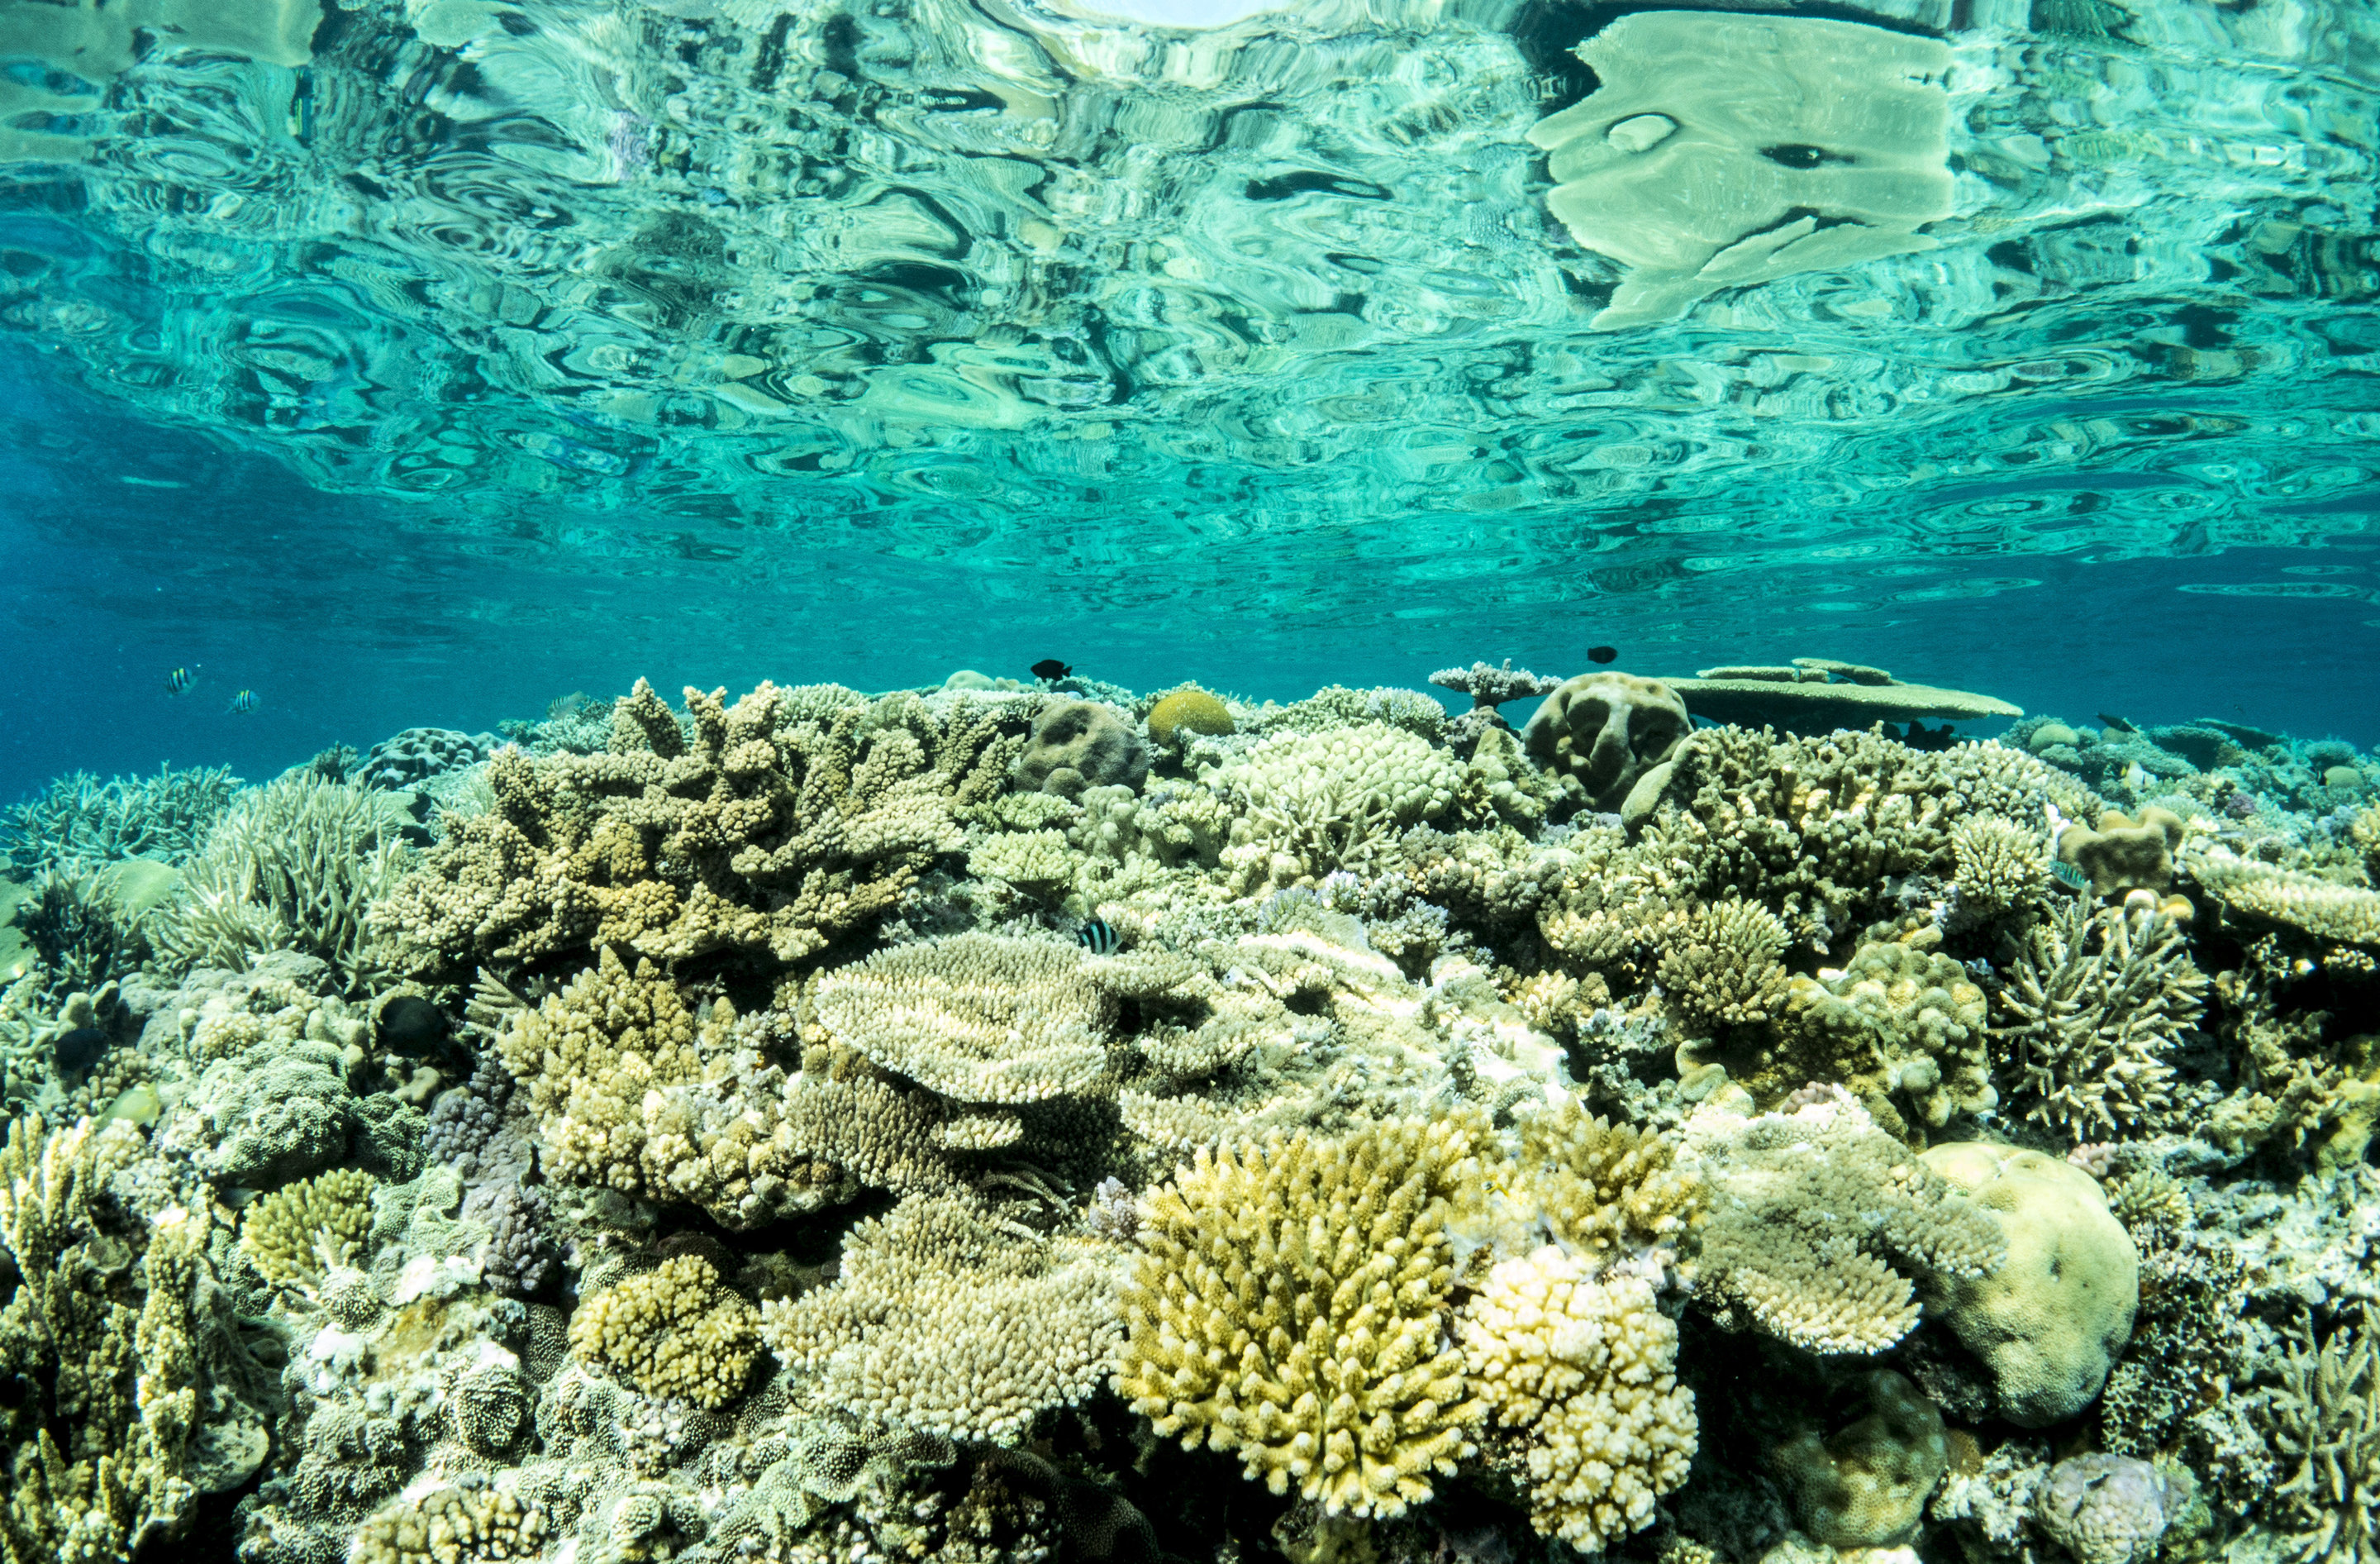 Australia to fund Great Barrier Reef restoration